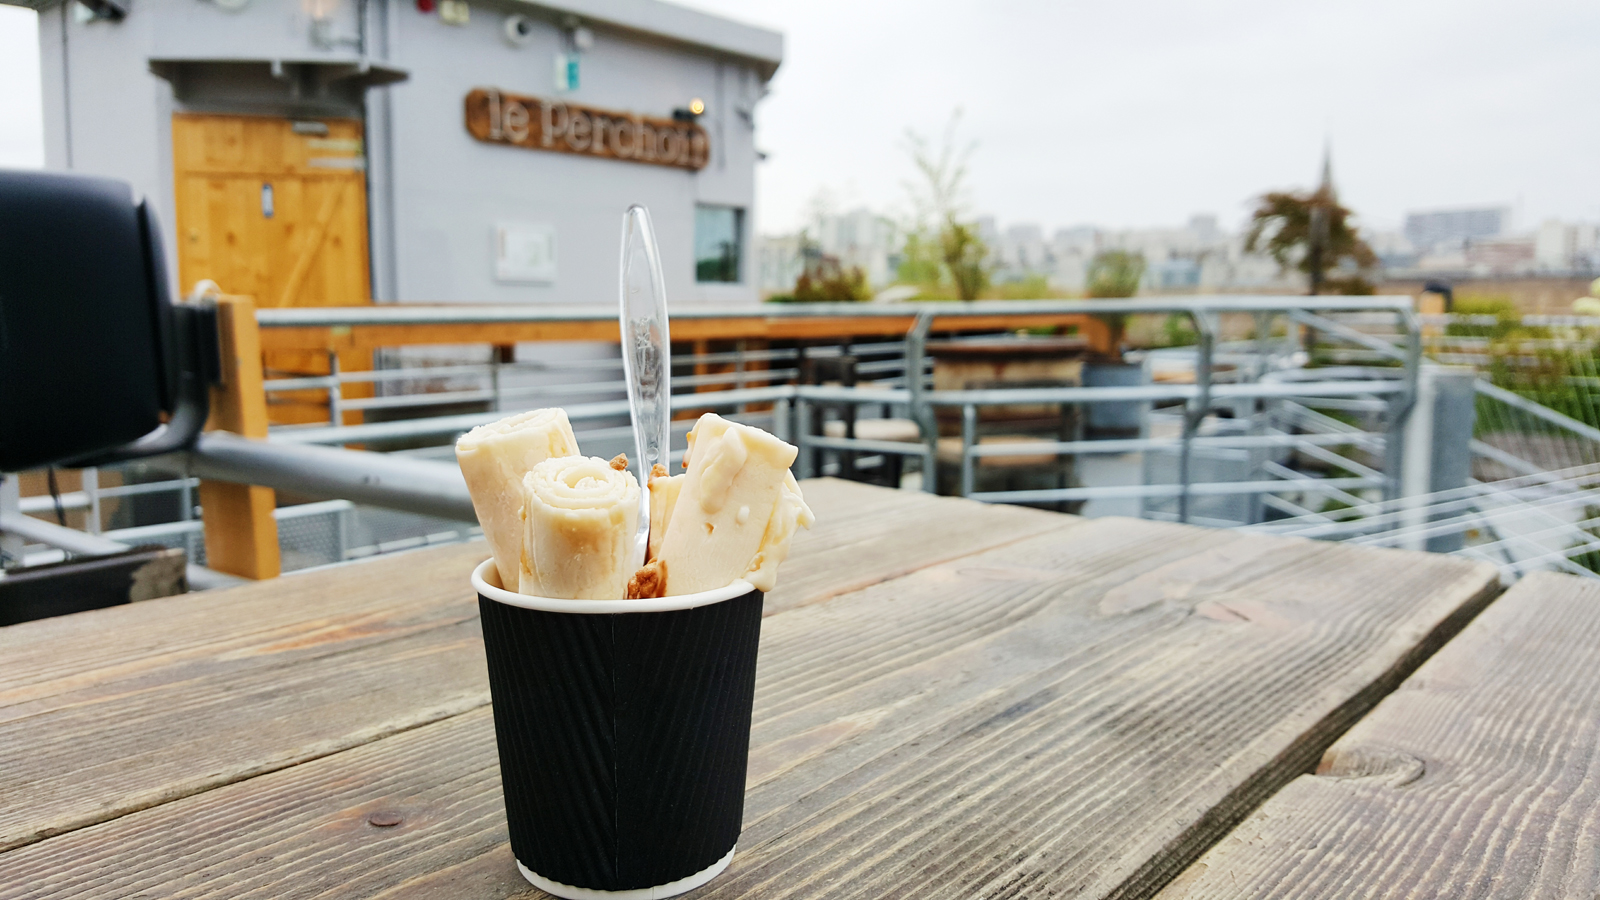 IceRoll-caramel-amandes-ice-cream-refreshed-nouvelle-expérience-de-crème-glacée-plaque-gelée-produits-de-qualité-dégustation-glace-Le-Perchoir-photo-by-united-states-of-paris-blog